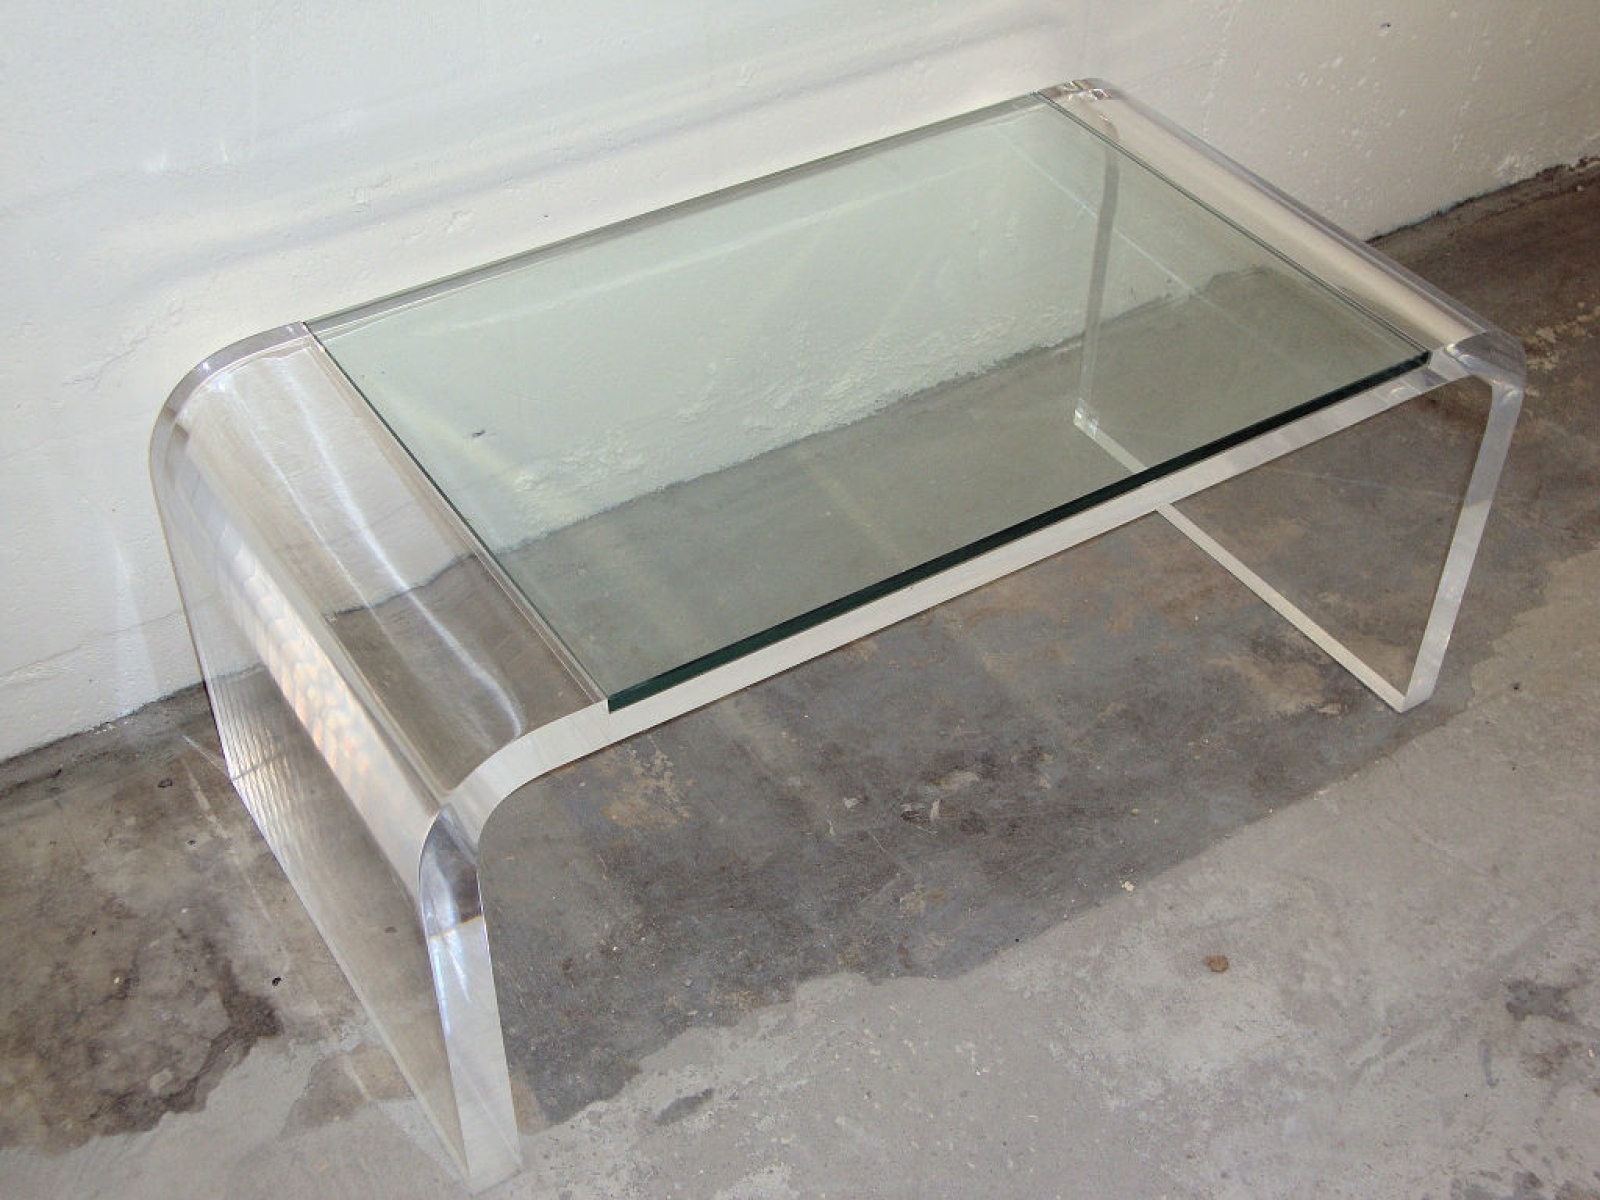 coffee table elegant acrylic tables with minimalst side design inside plexiglass small round lucite desk square accent leather ott chairs modern black marble end mid century metal